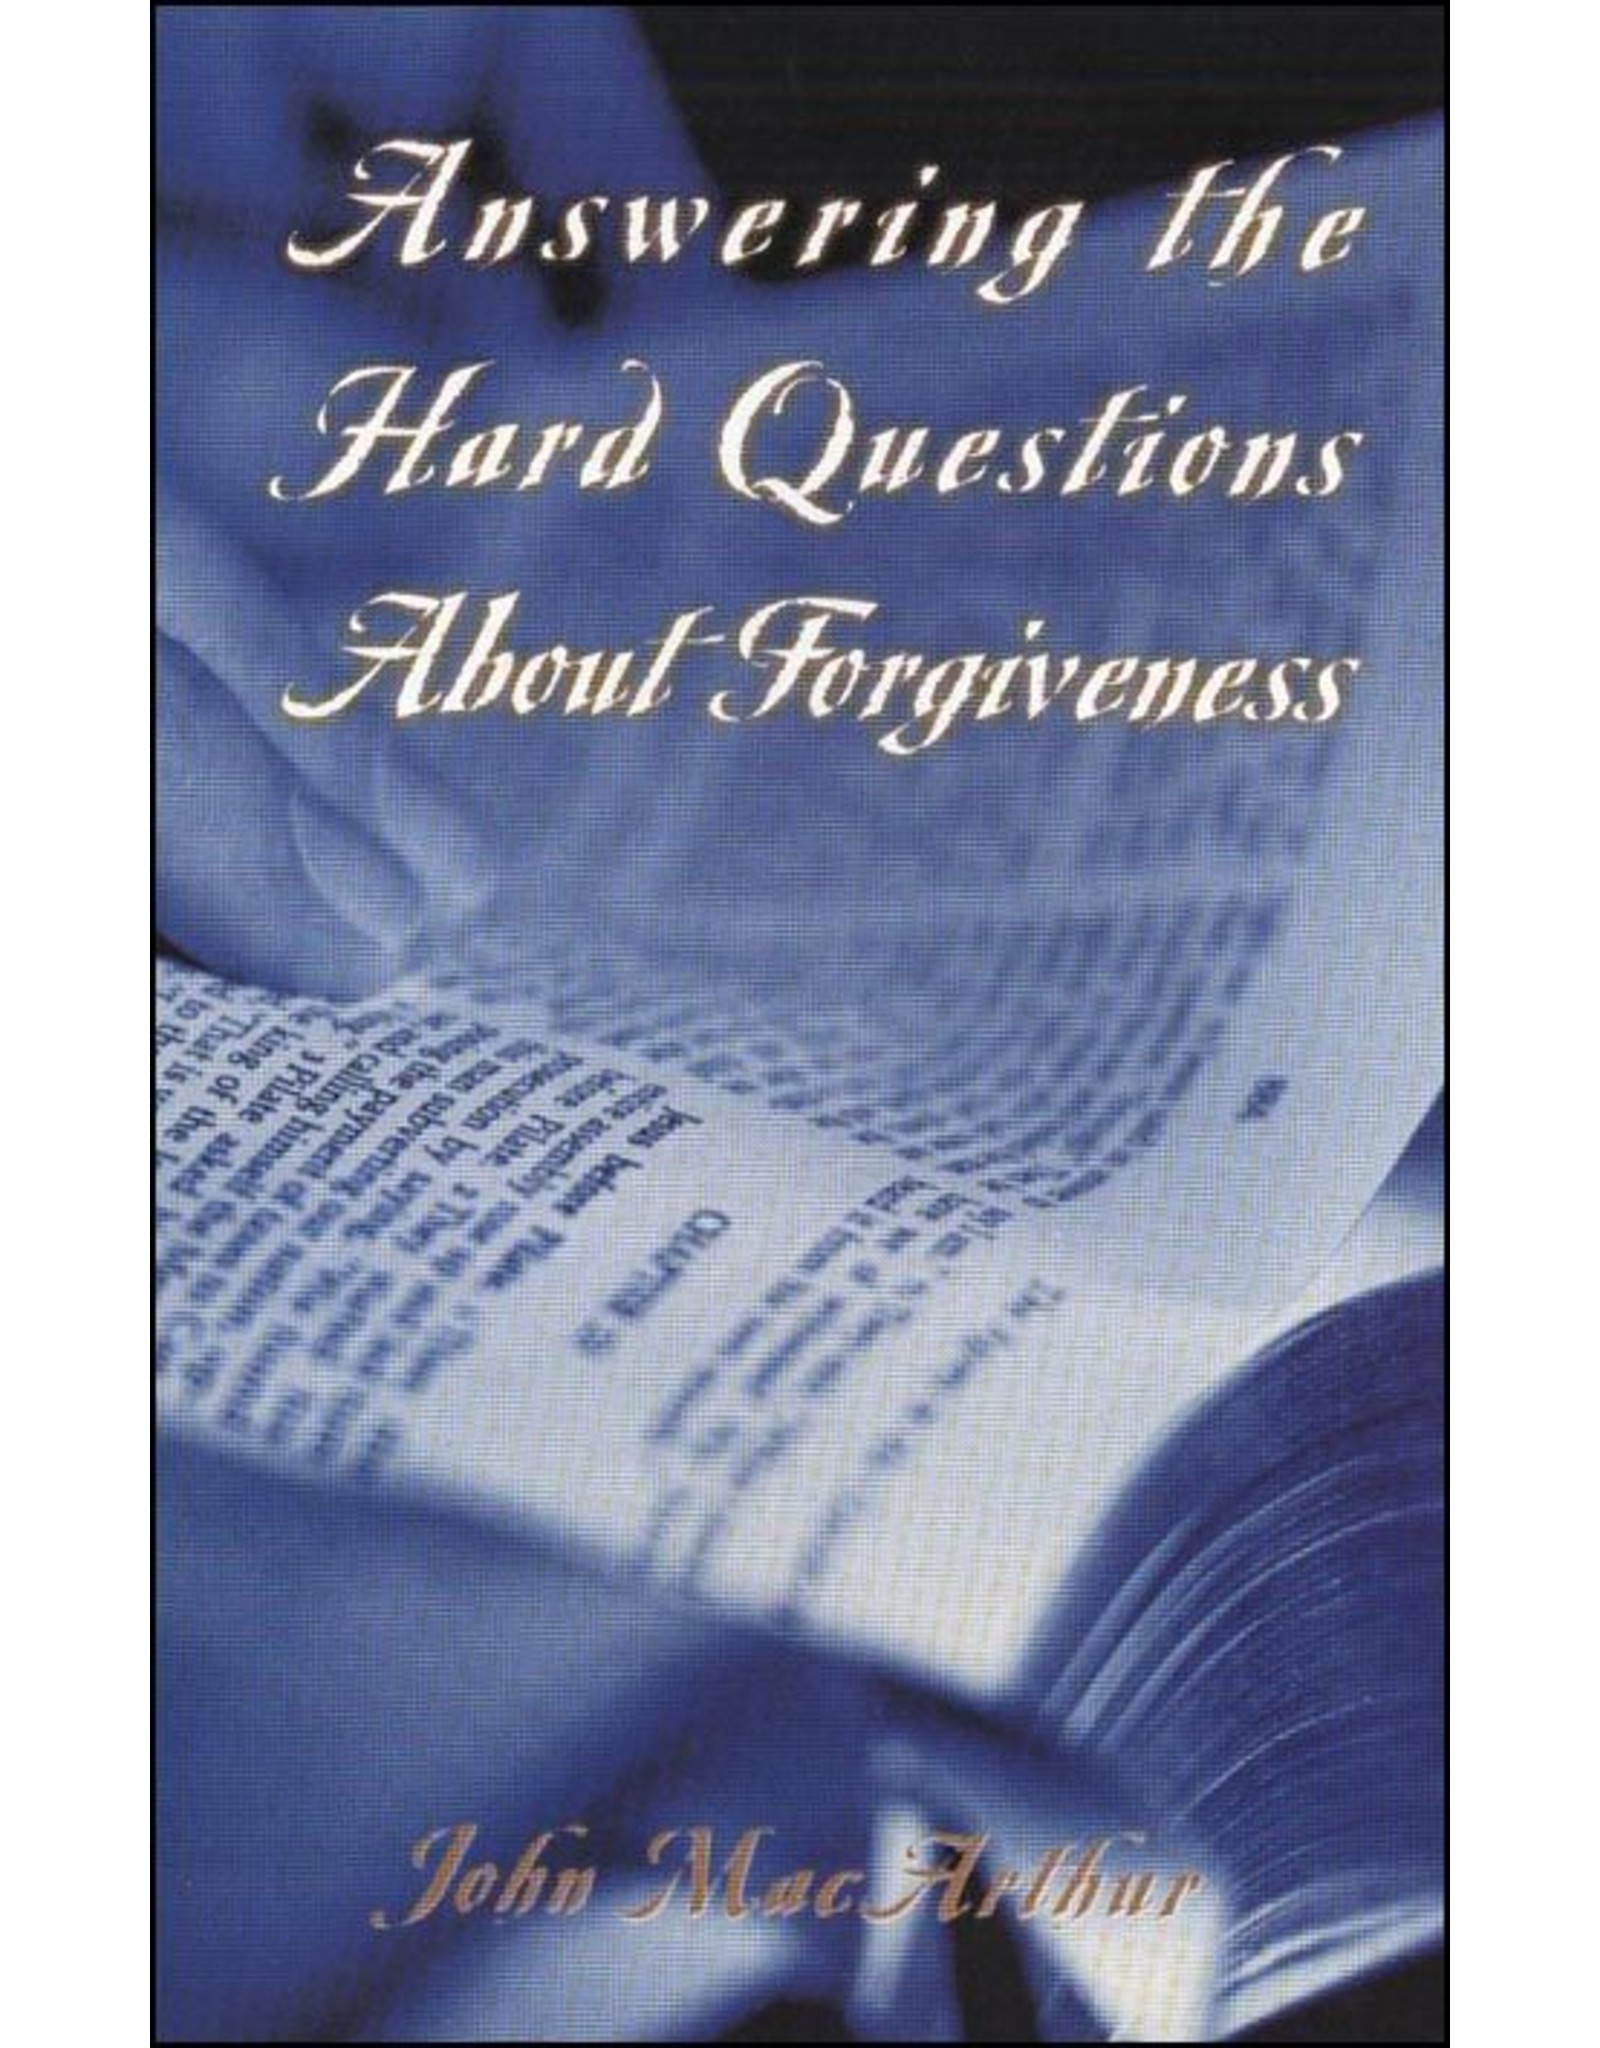 Grace to You (GTY) Answering the Hard Questions About Forgiveness